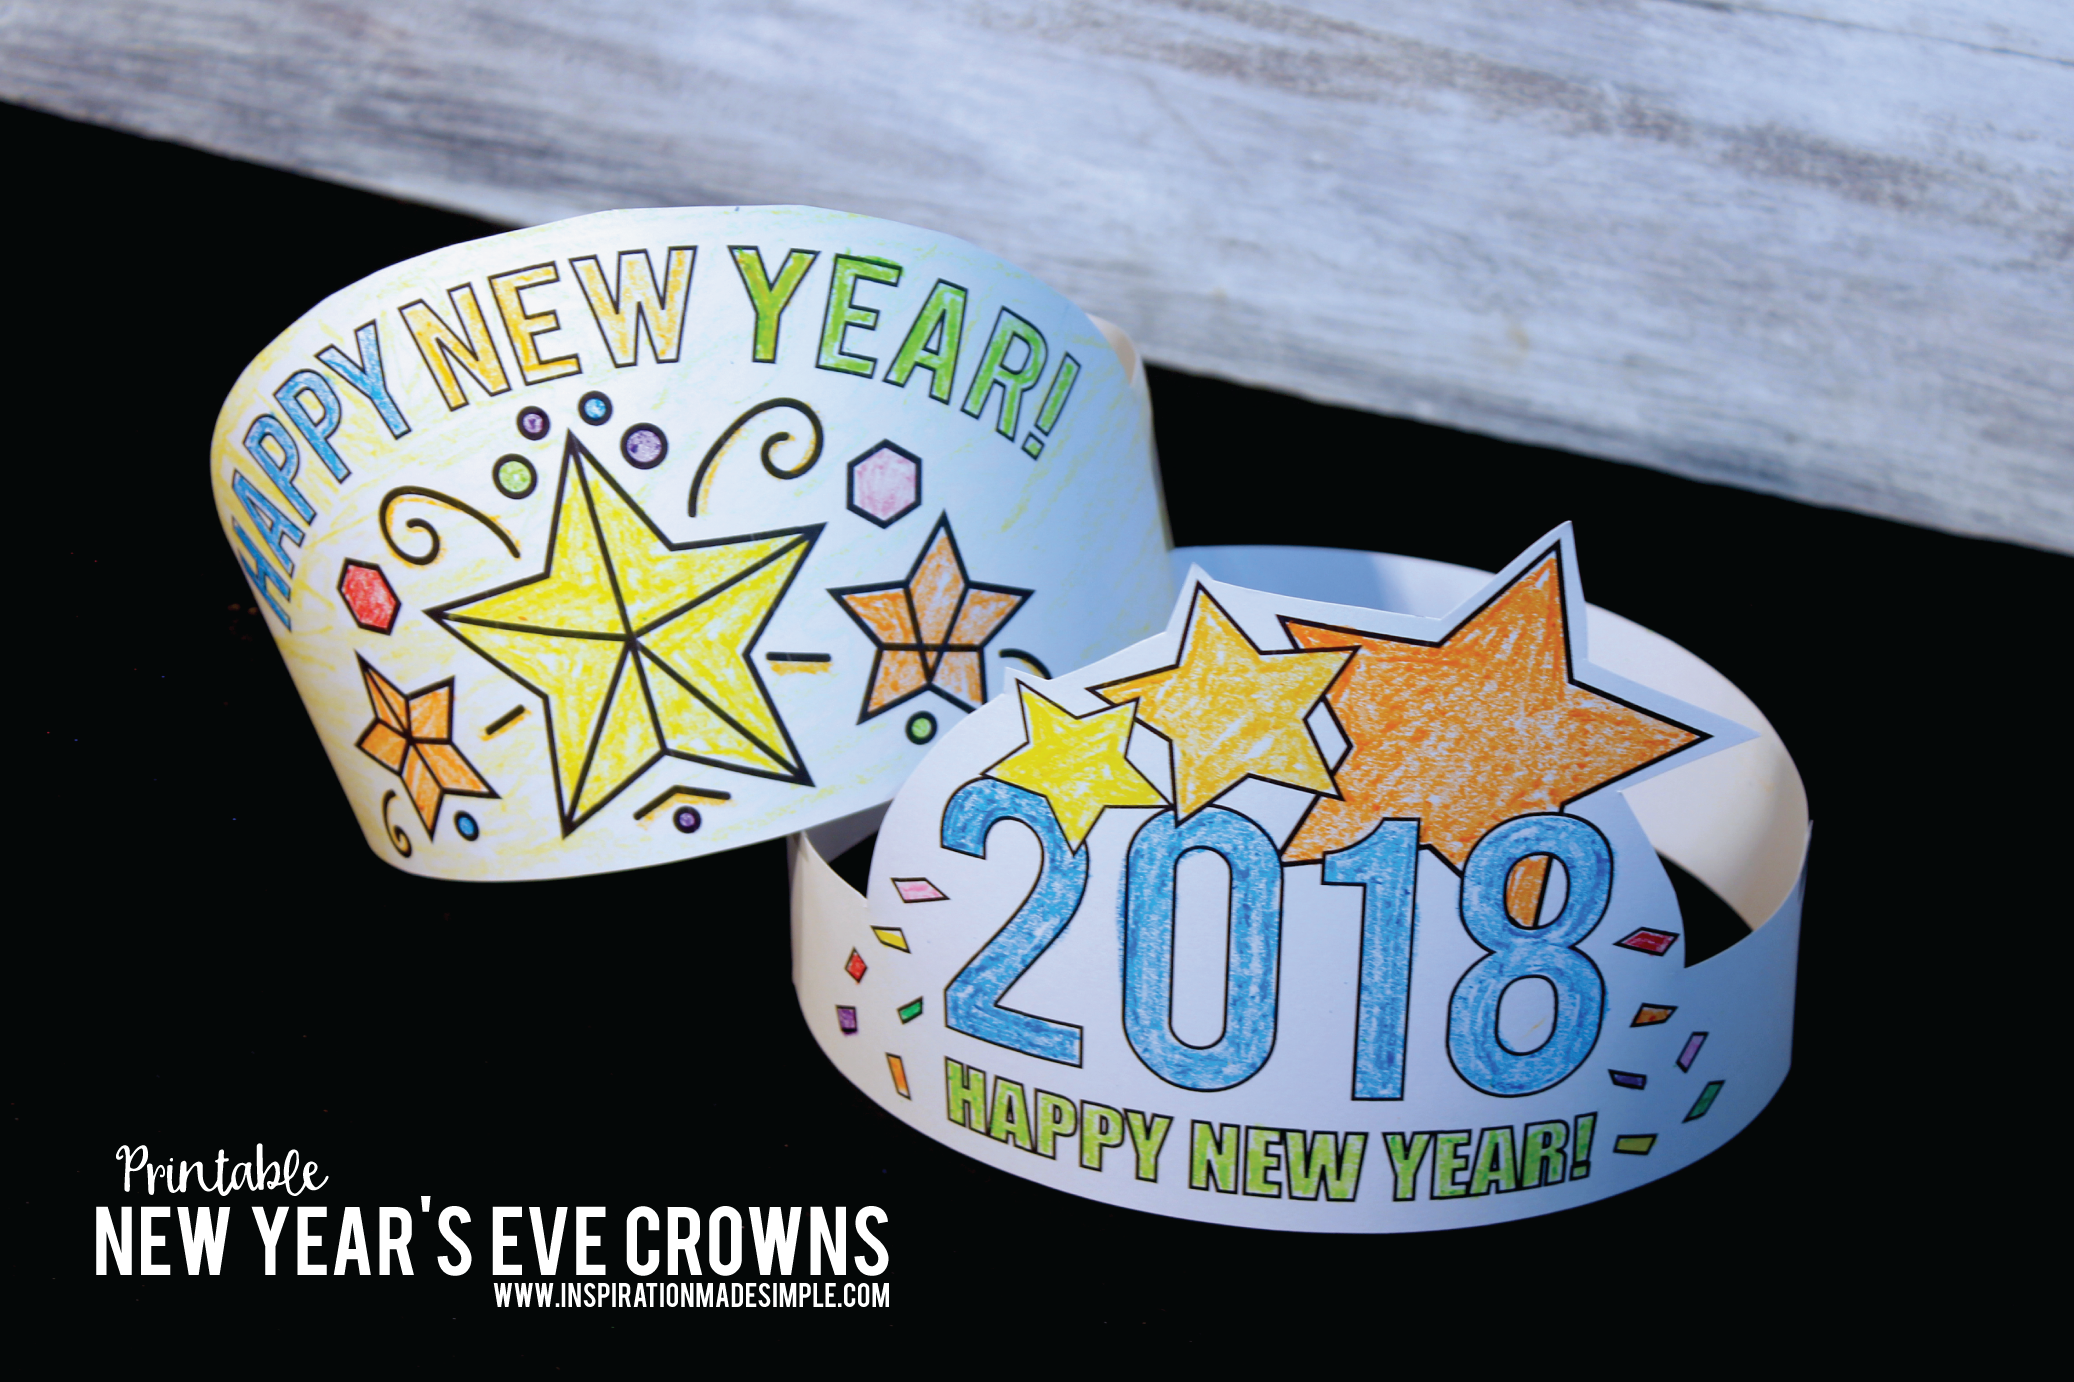 Printable New Year's Eve Crown